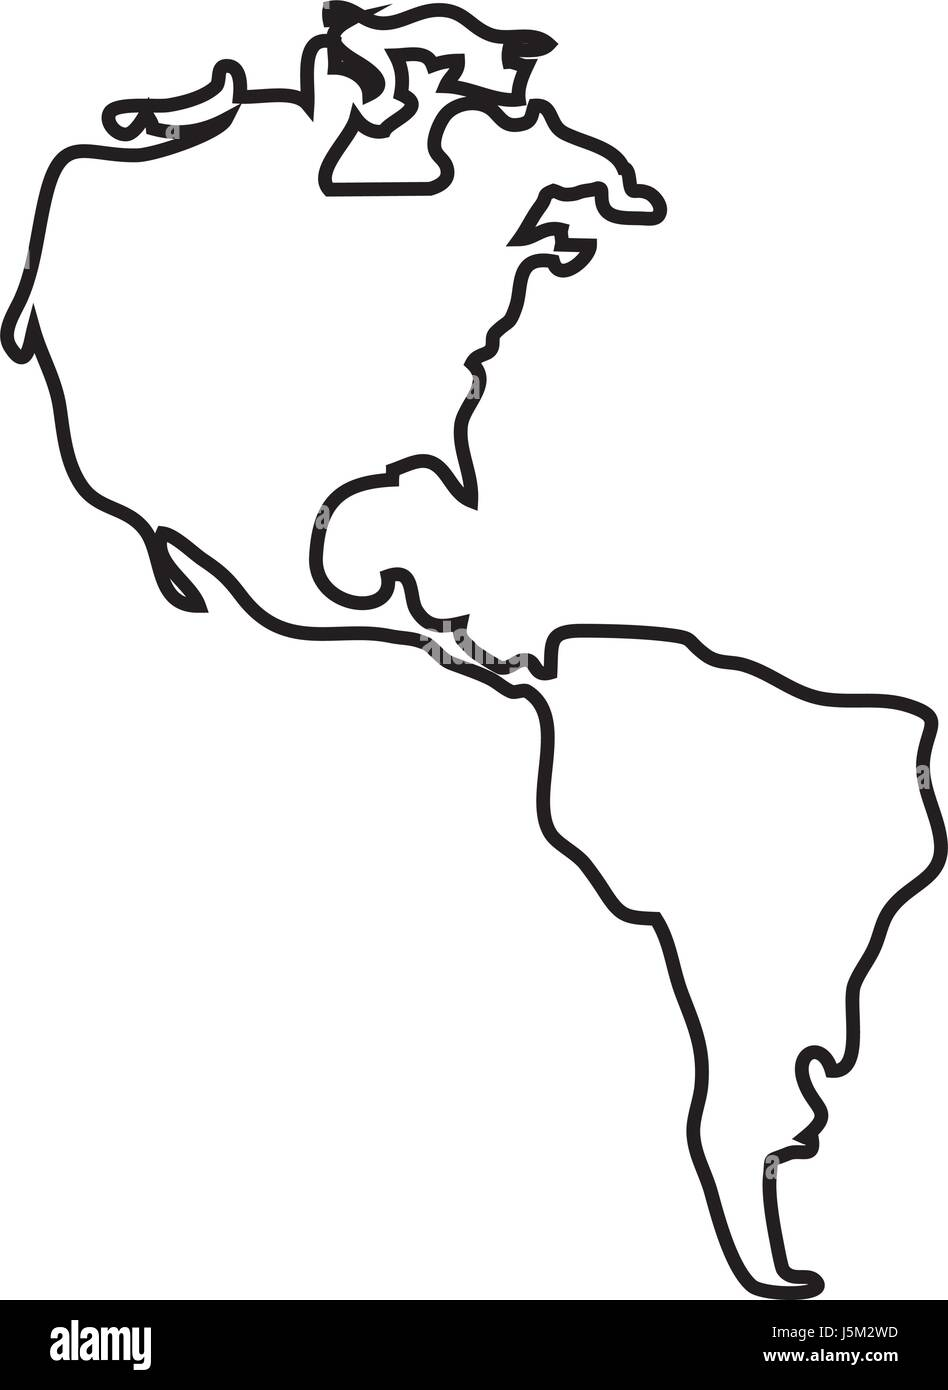 America Map Stock Photos America Map Stock Images Alamy - North america map black and white